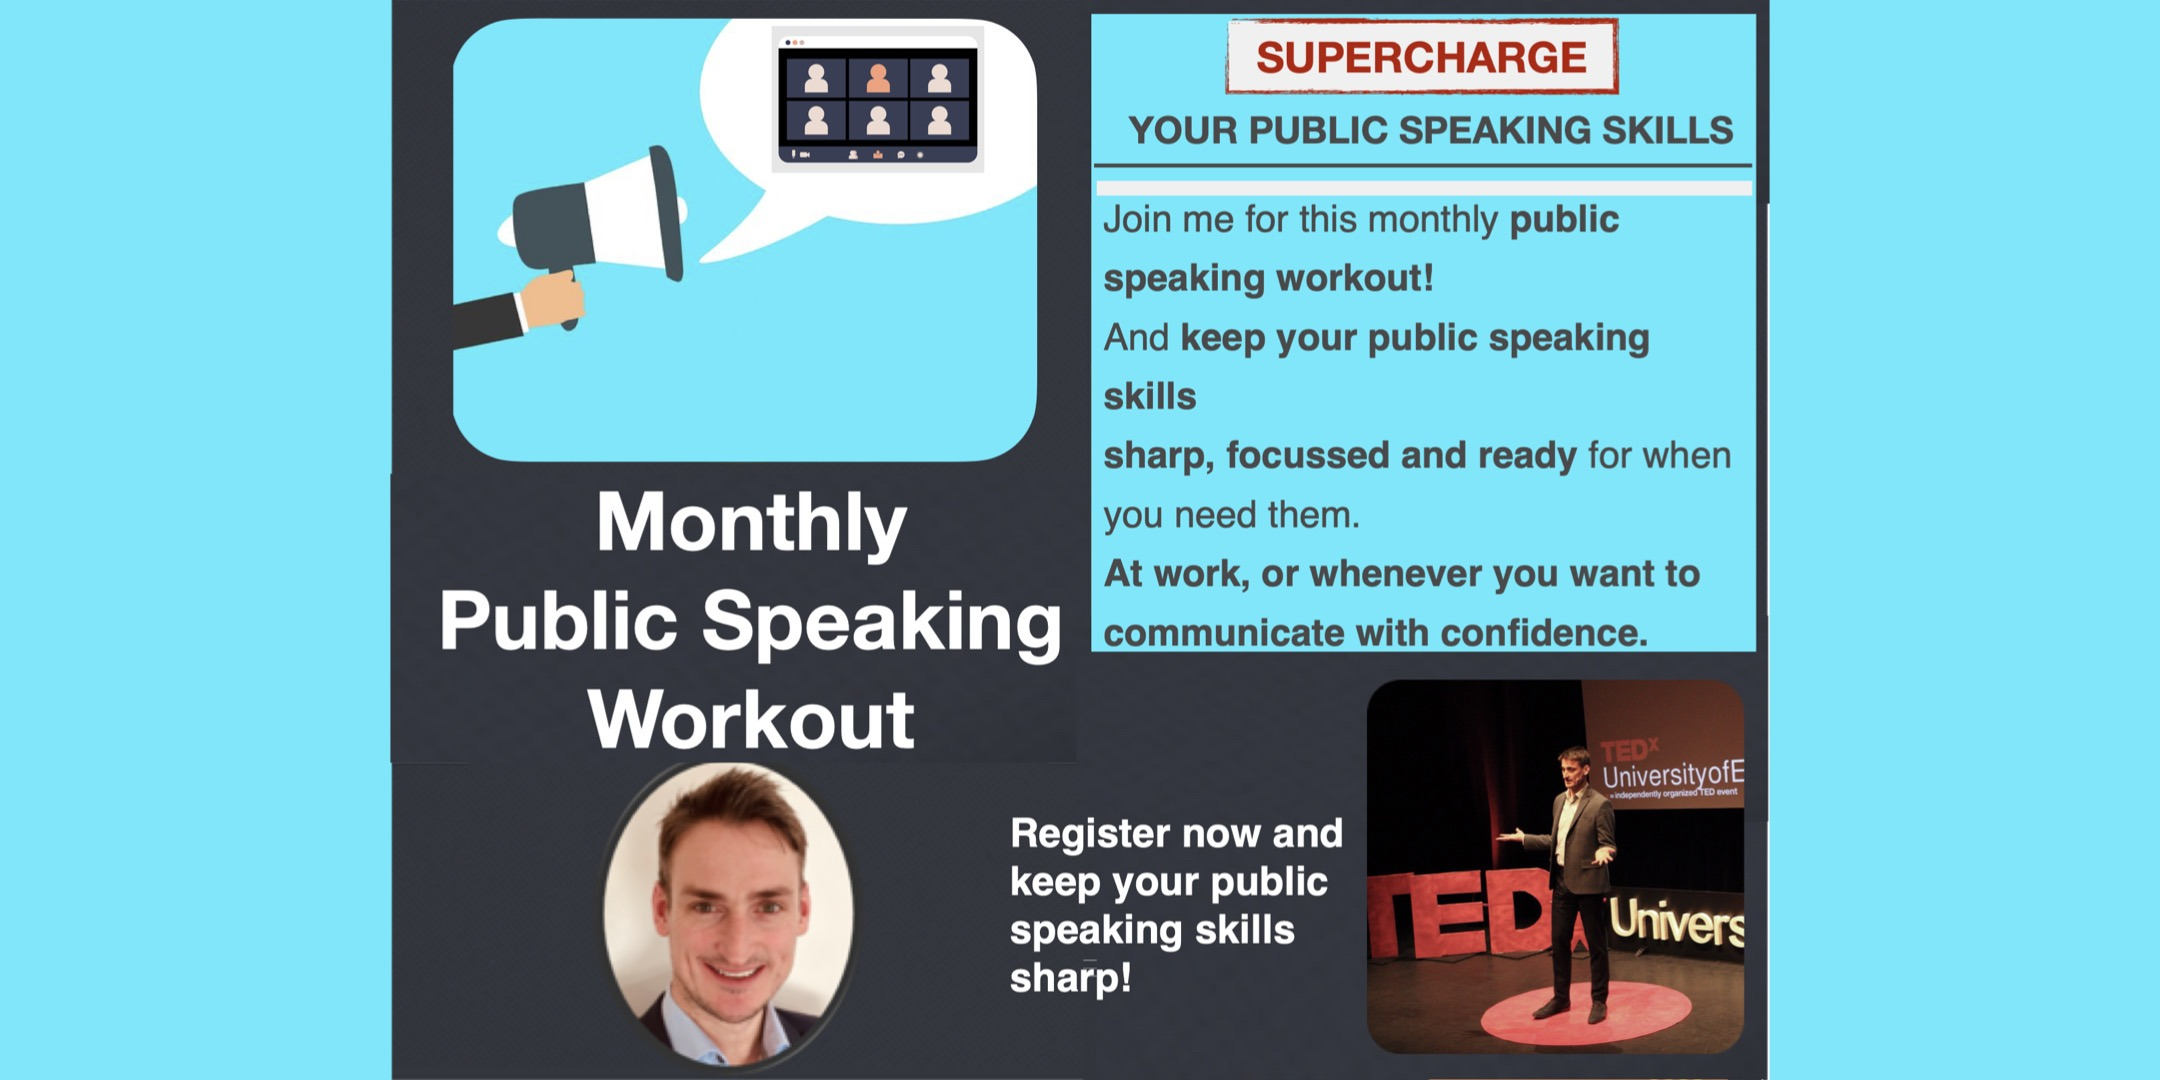 Monthly public speaking workout with David Murray